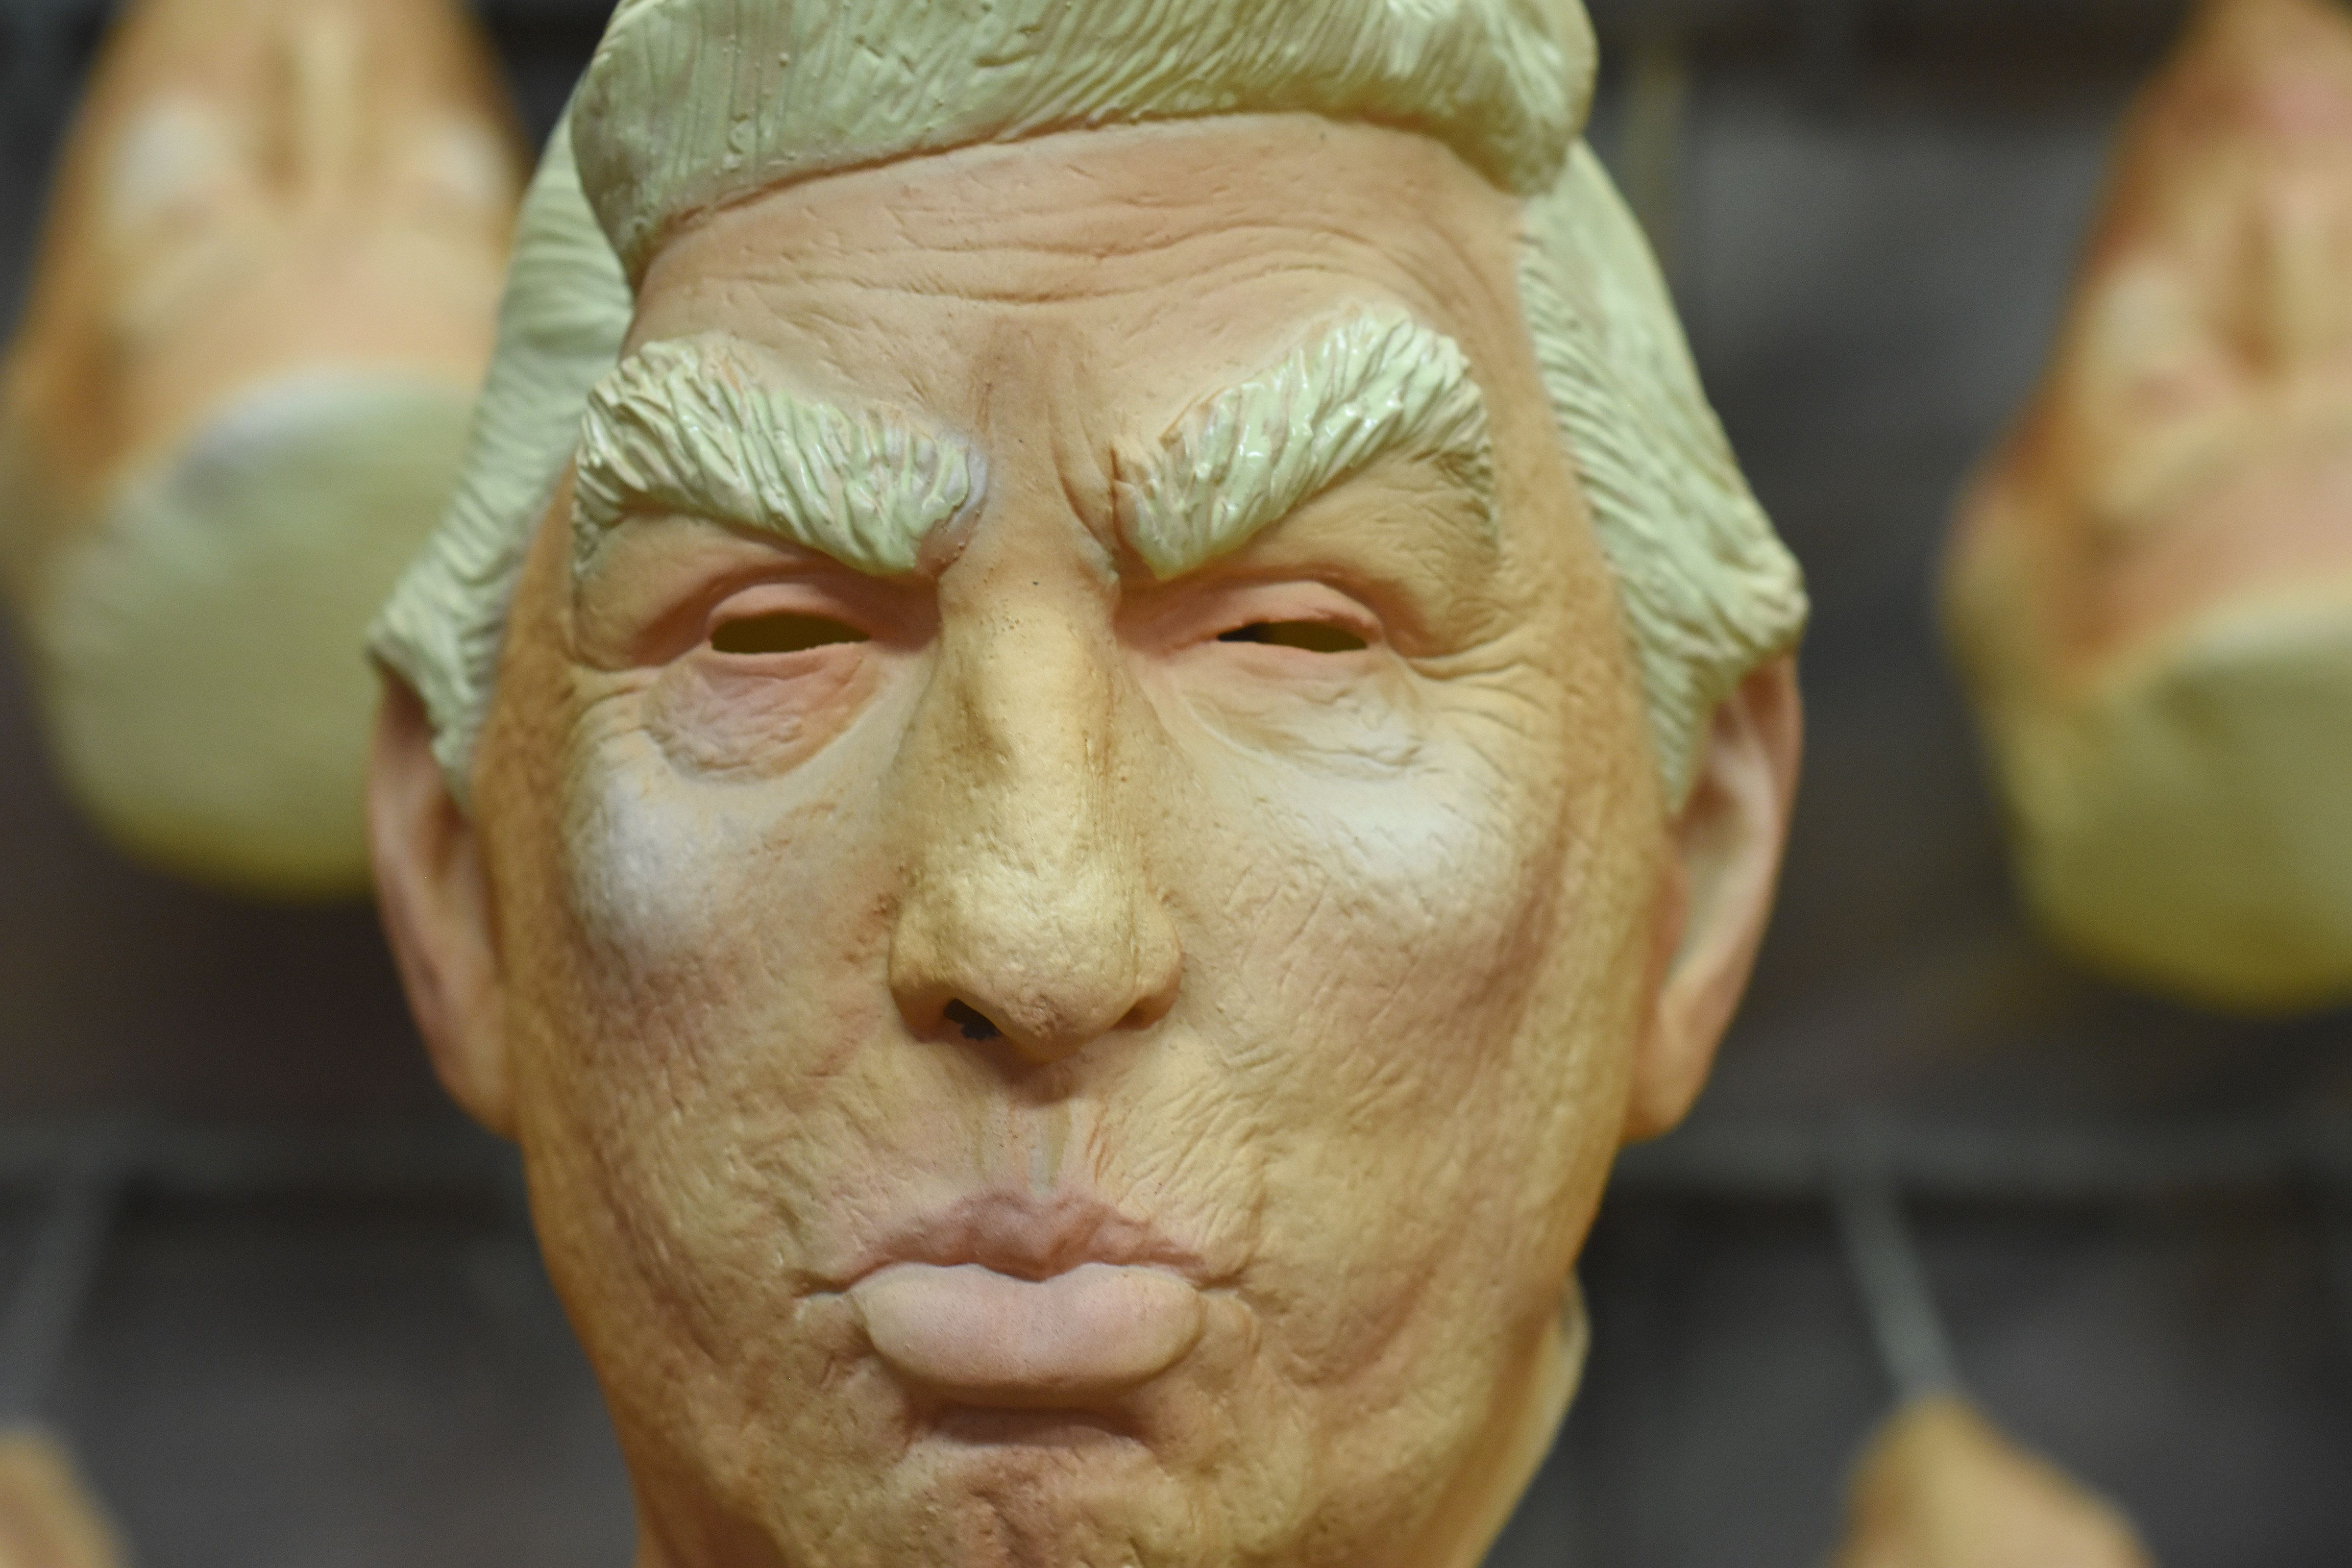 CUERNAVACA, MEXICO - APRIL 27: Detail of U.S President Donald Trump latex mask during the finishing process of latex masks manufacturing at REV Latex Mask factory on April 27, 2018 in Cuernavaca, Mexico. (Photo by Carlos Tischler/Getty Images)